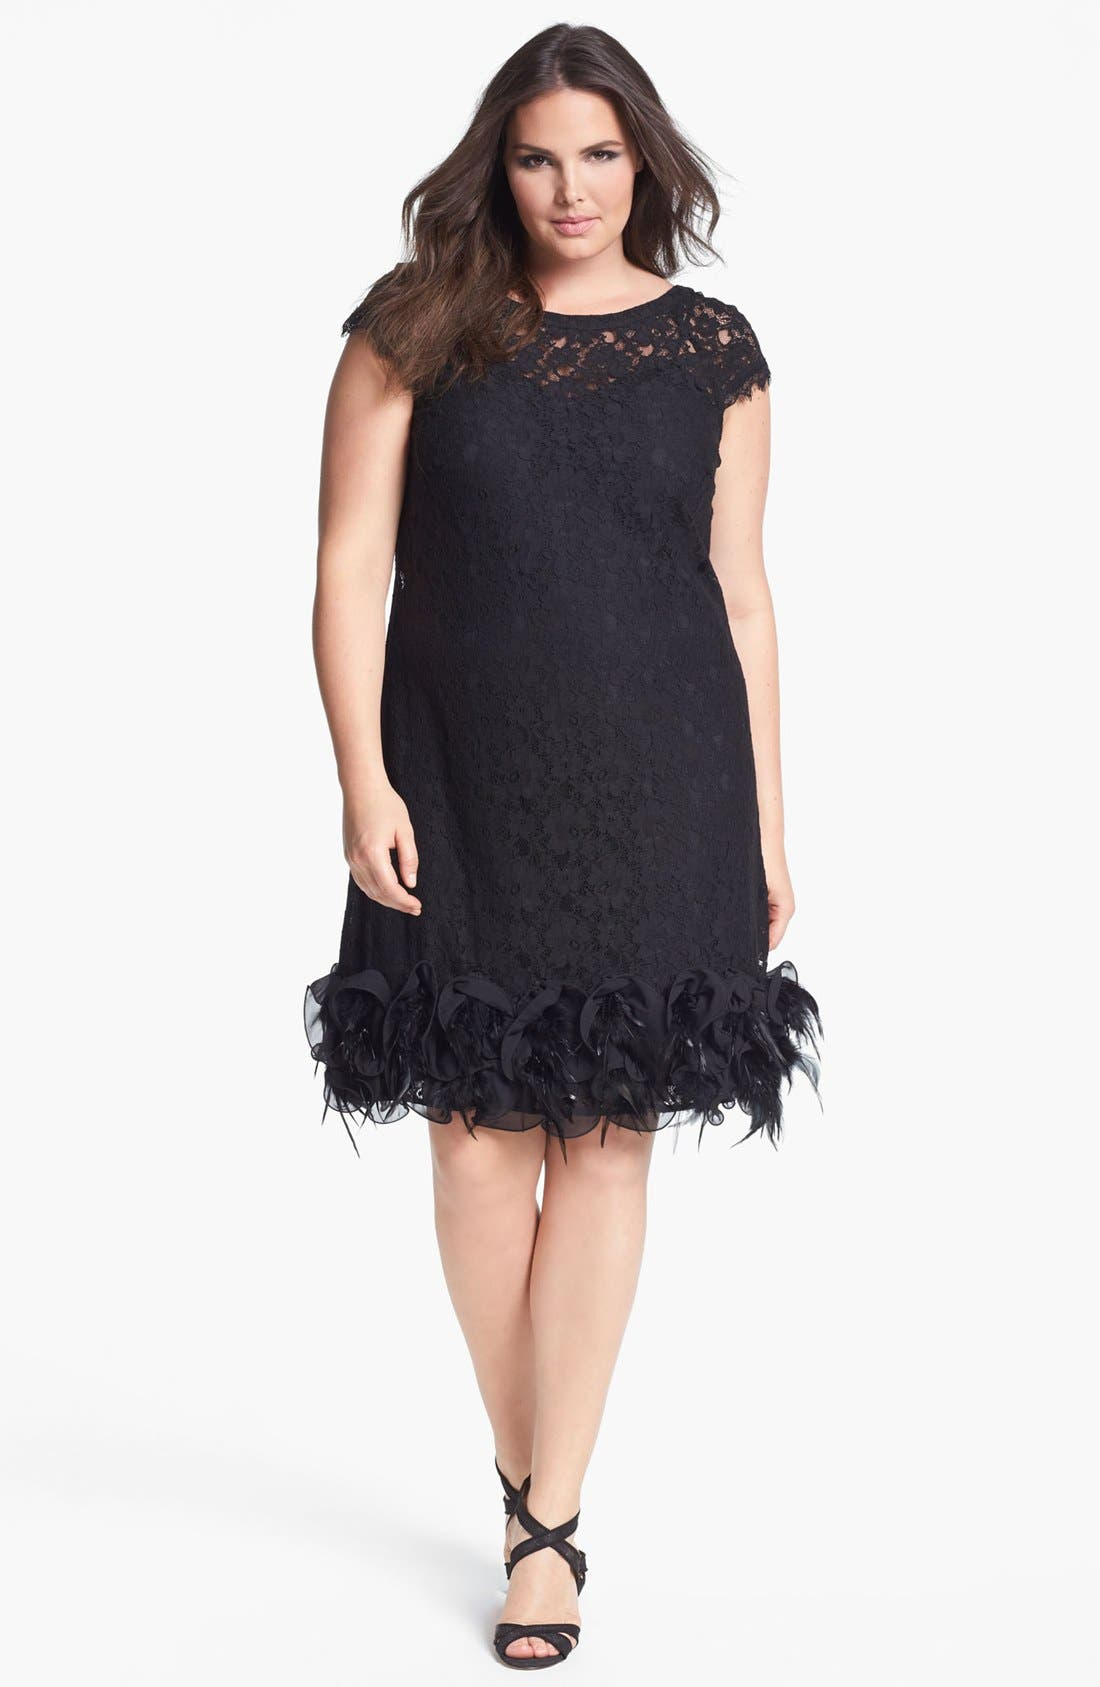 Alternate Image 1 Selected - Jessica Simpson Feather Trim Lace Dress (Plus Size)